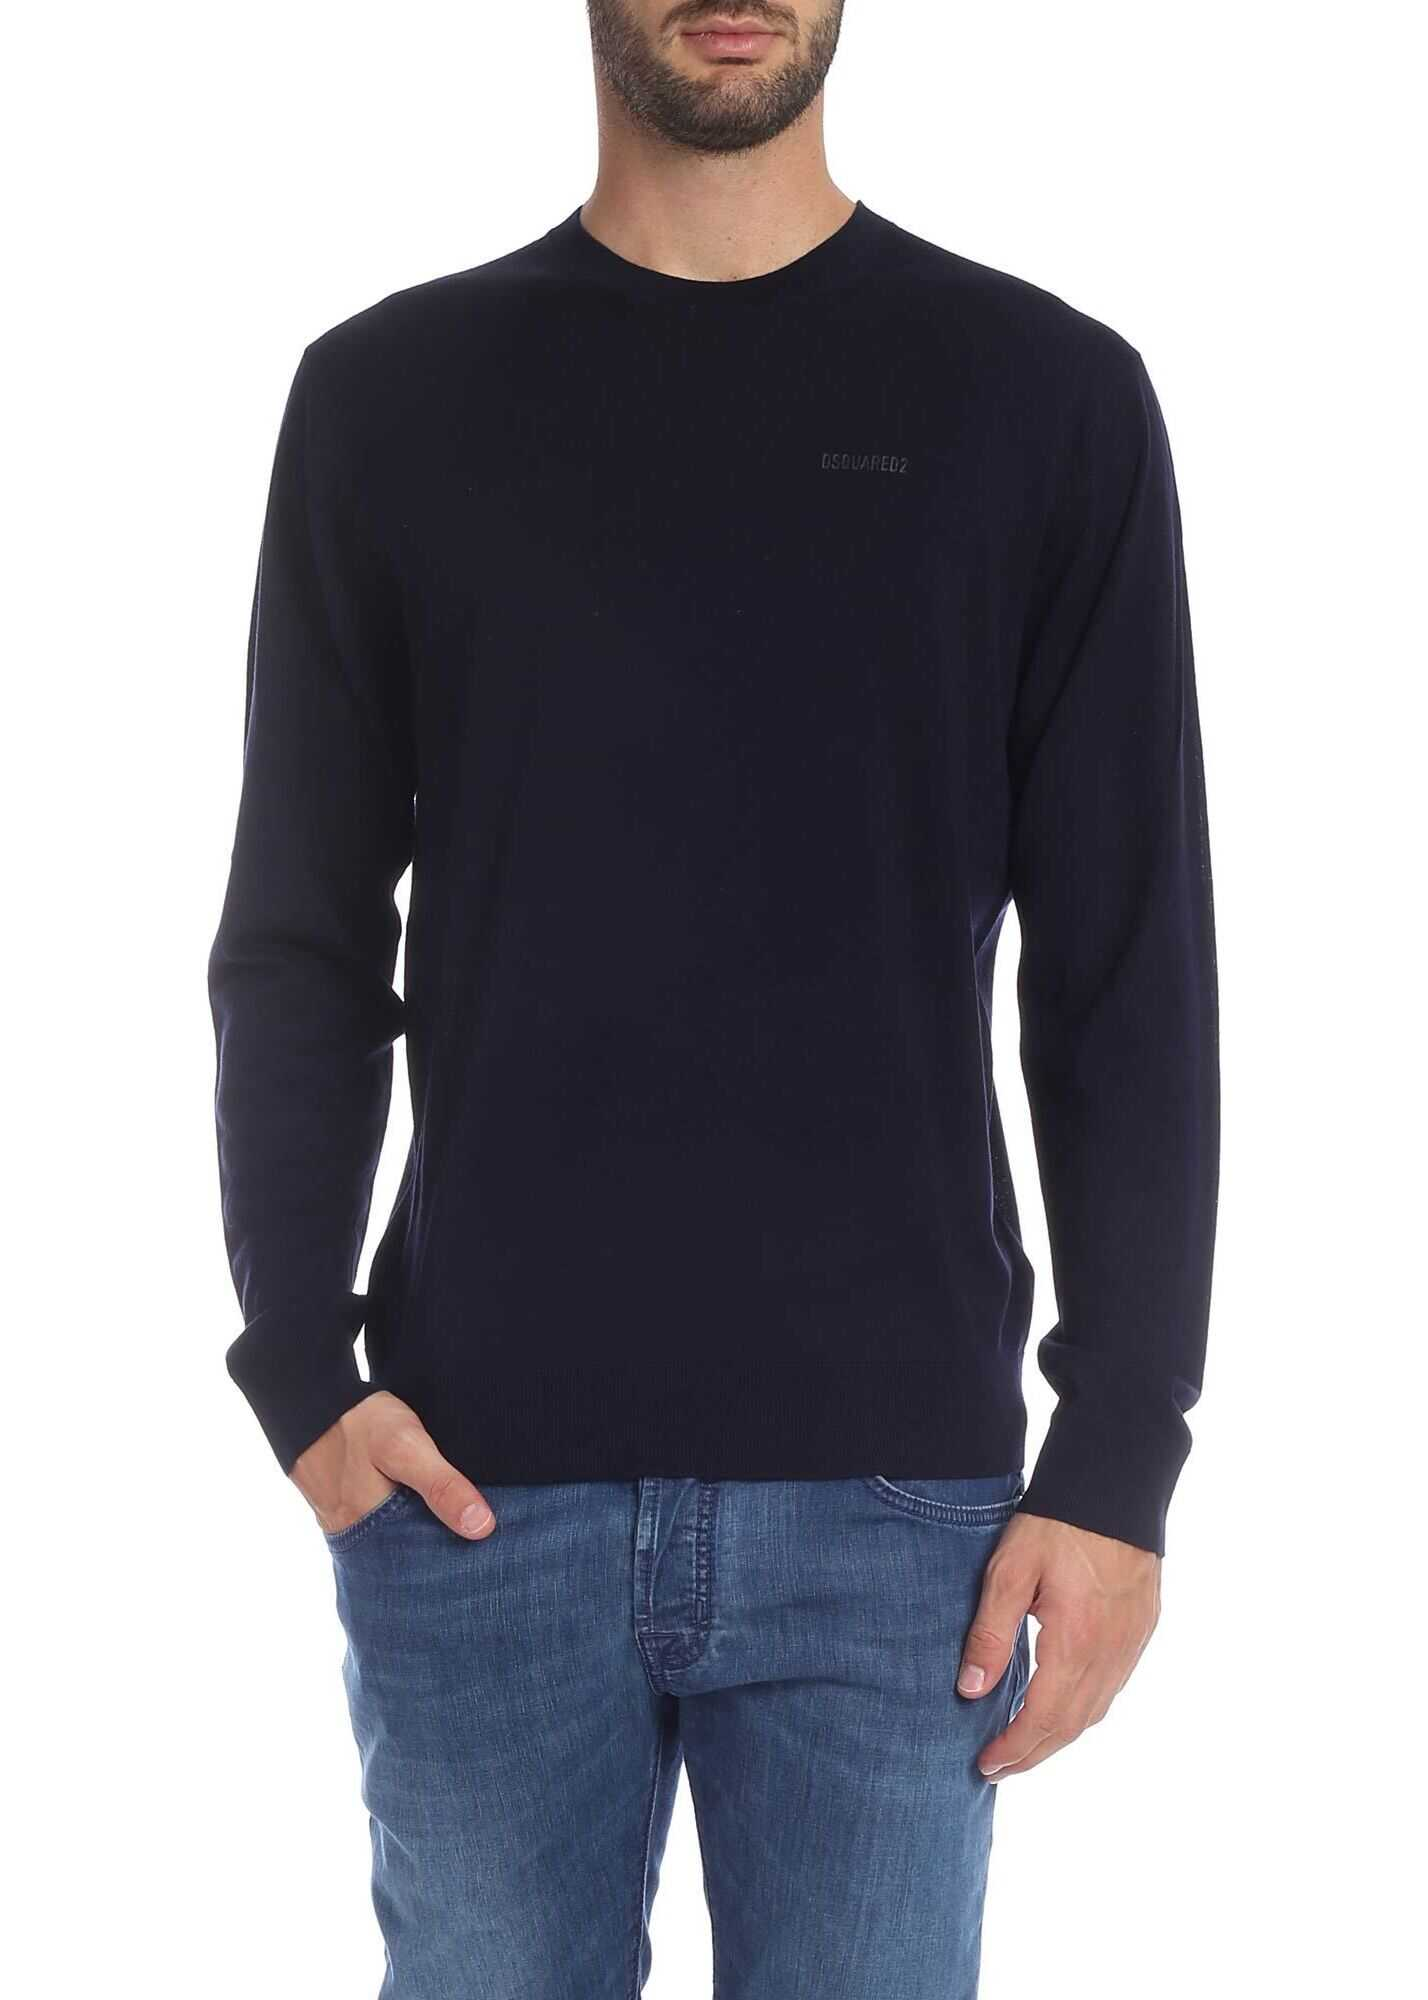 DSQUARED2 Dark Blue Wool Pullover Blue